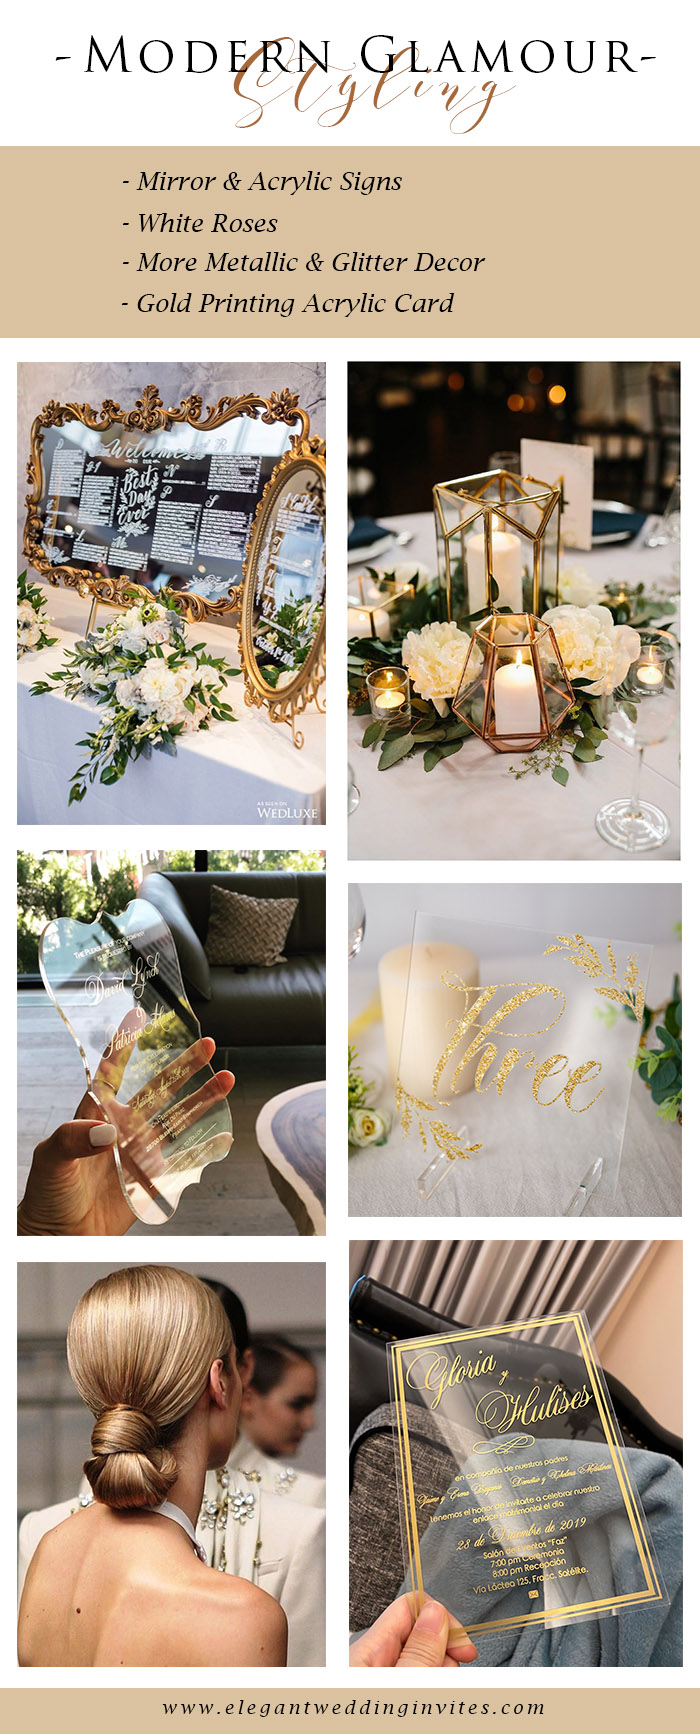 affordable modern glamour indoor wedding theme for banquet hall venue